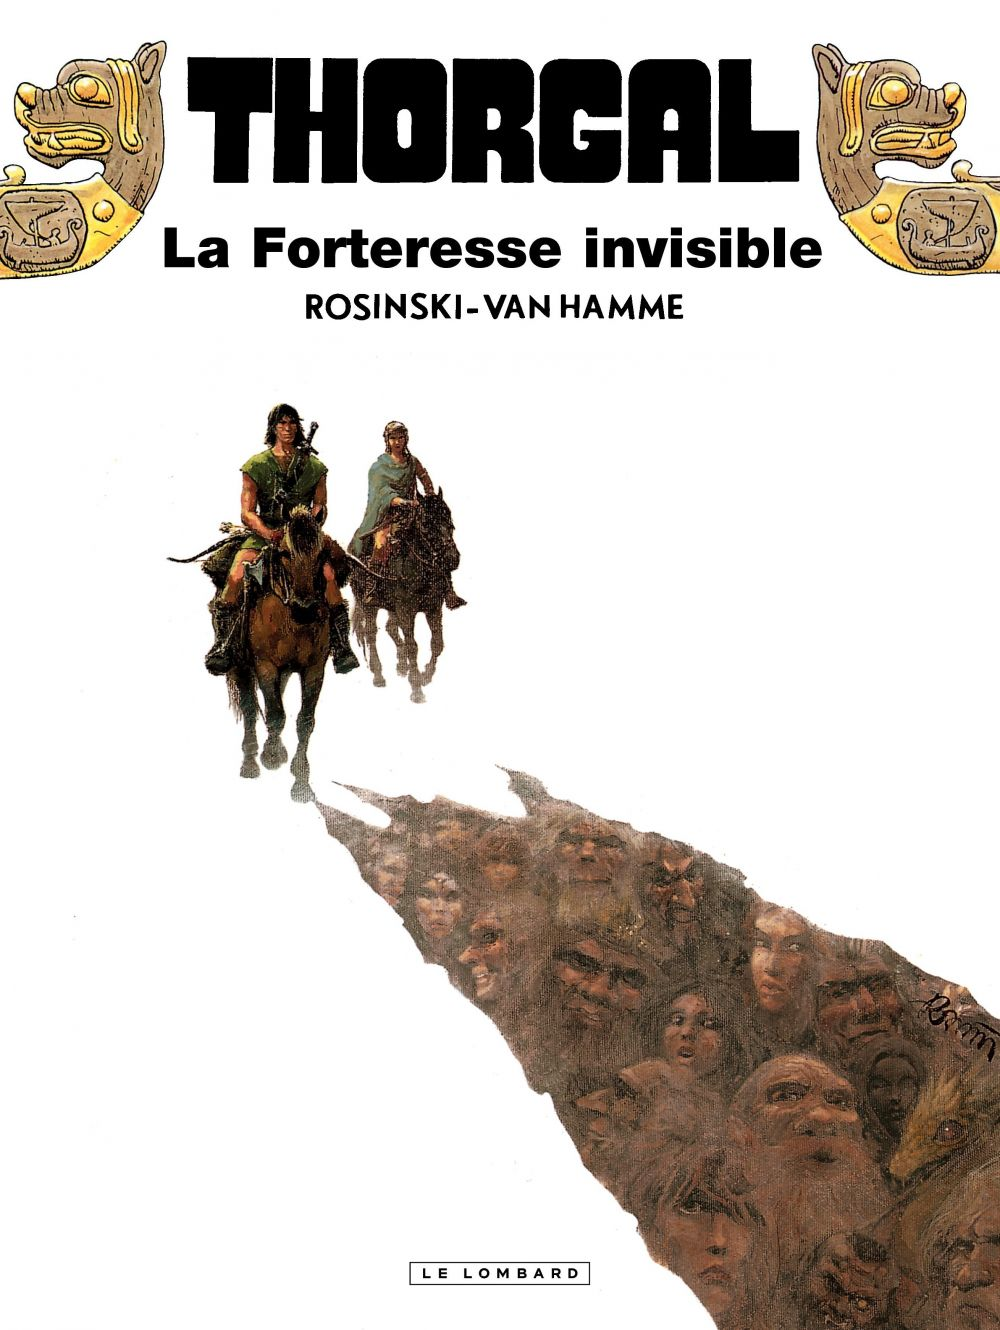 Thorgal - Tome 19 - Forteresse invisible (La)